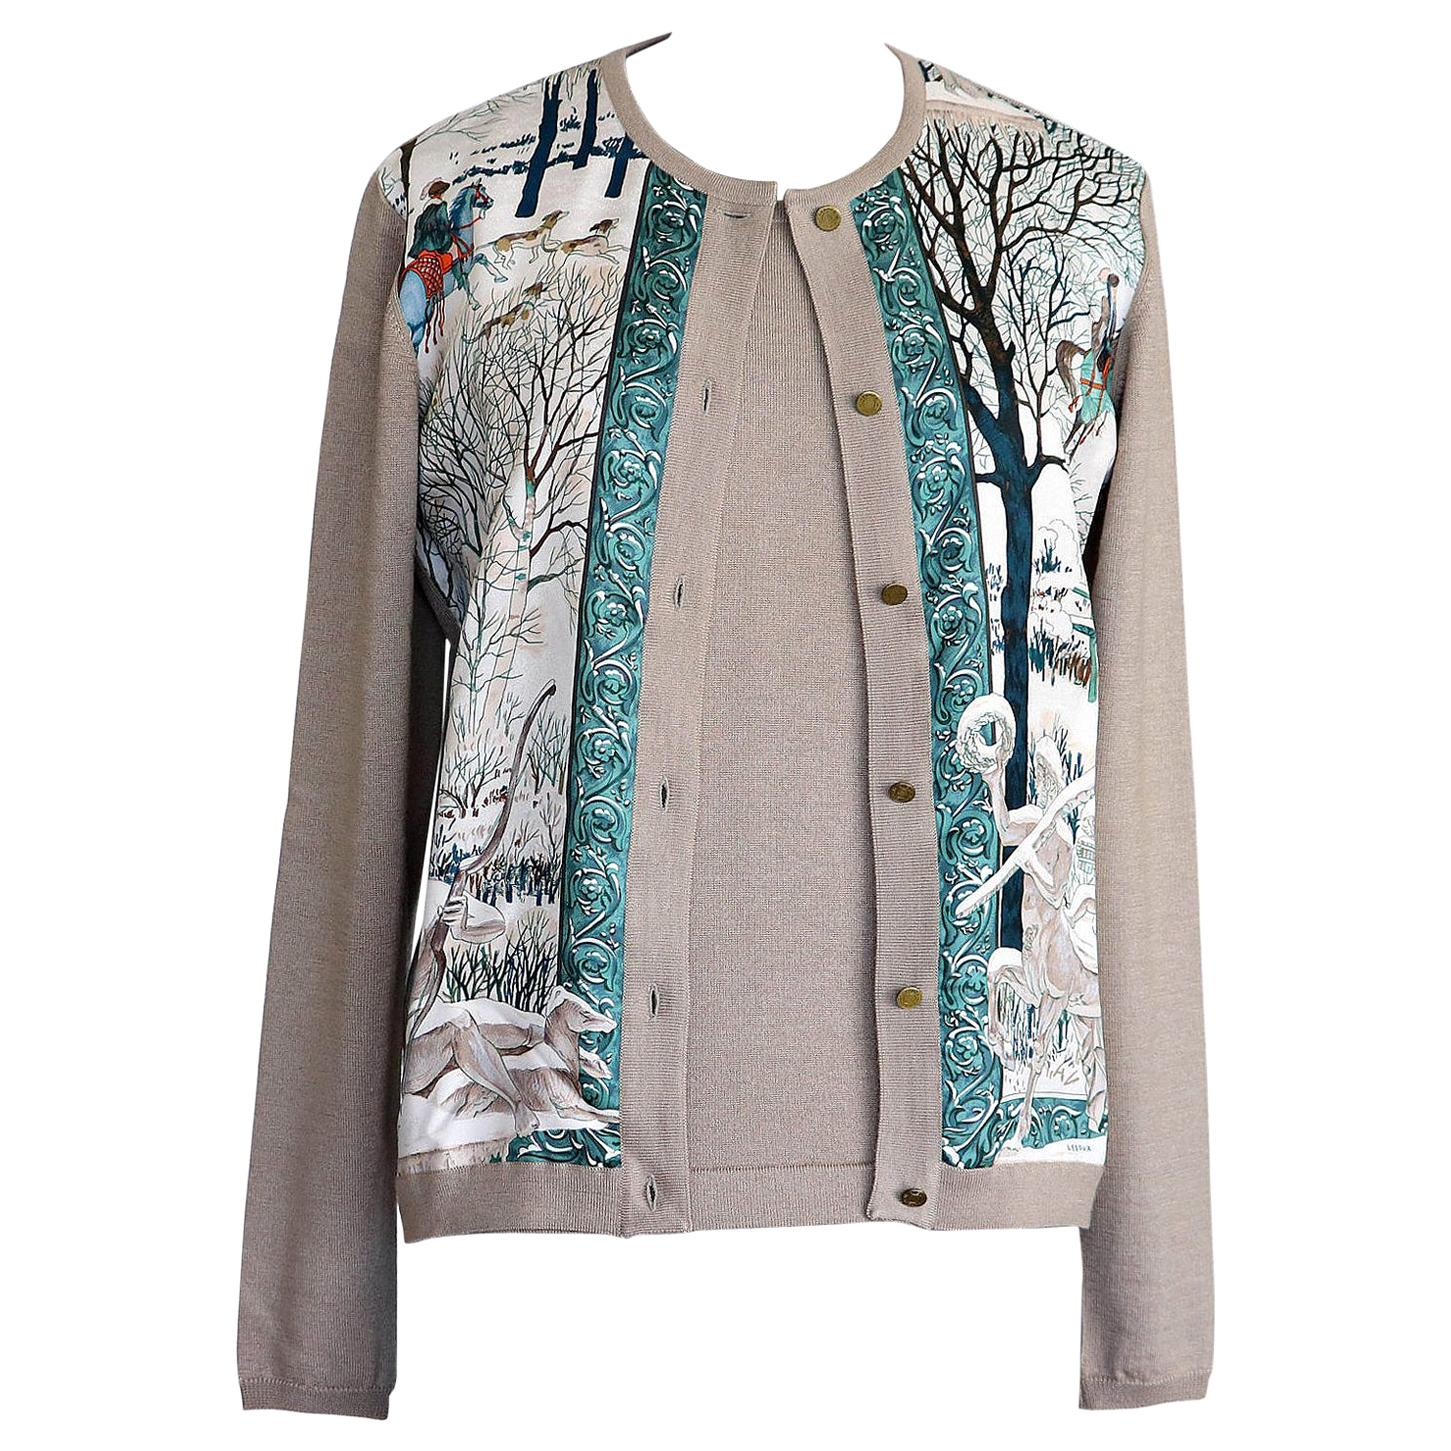 Hermes Twinset L'Hiver Neutral Taupe Cashmere / Silk Signed Print  36 /  4